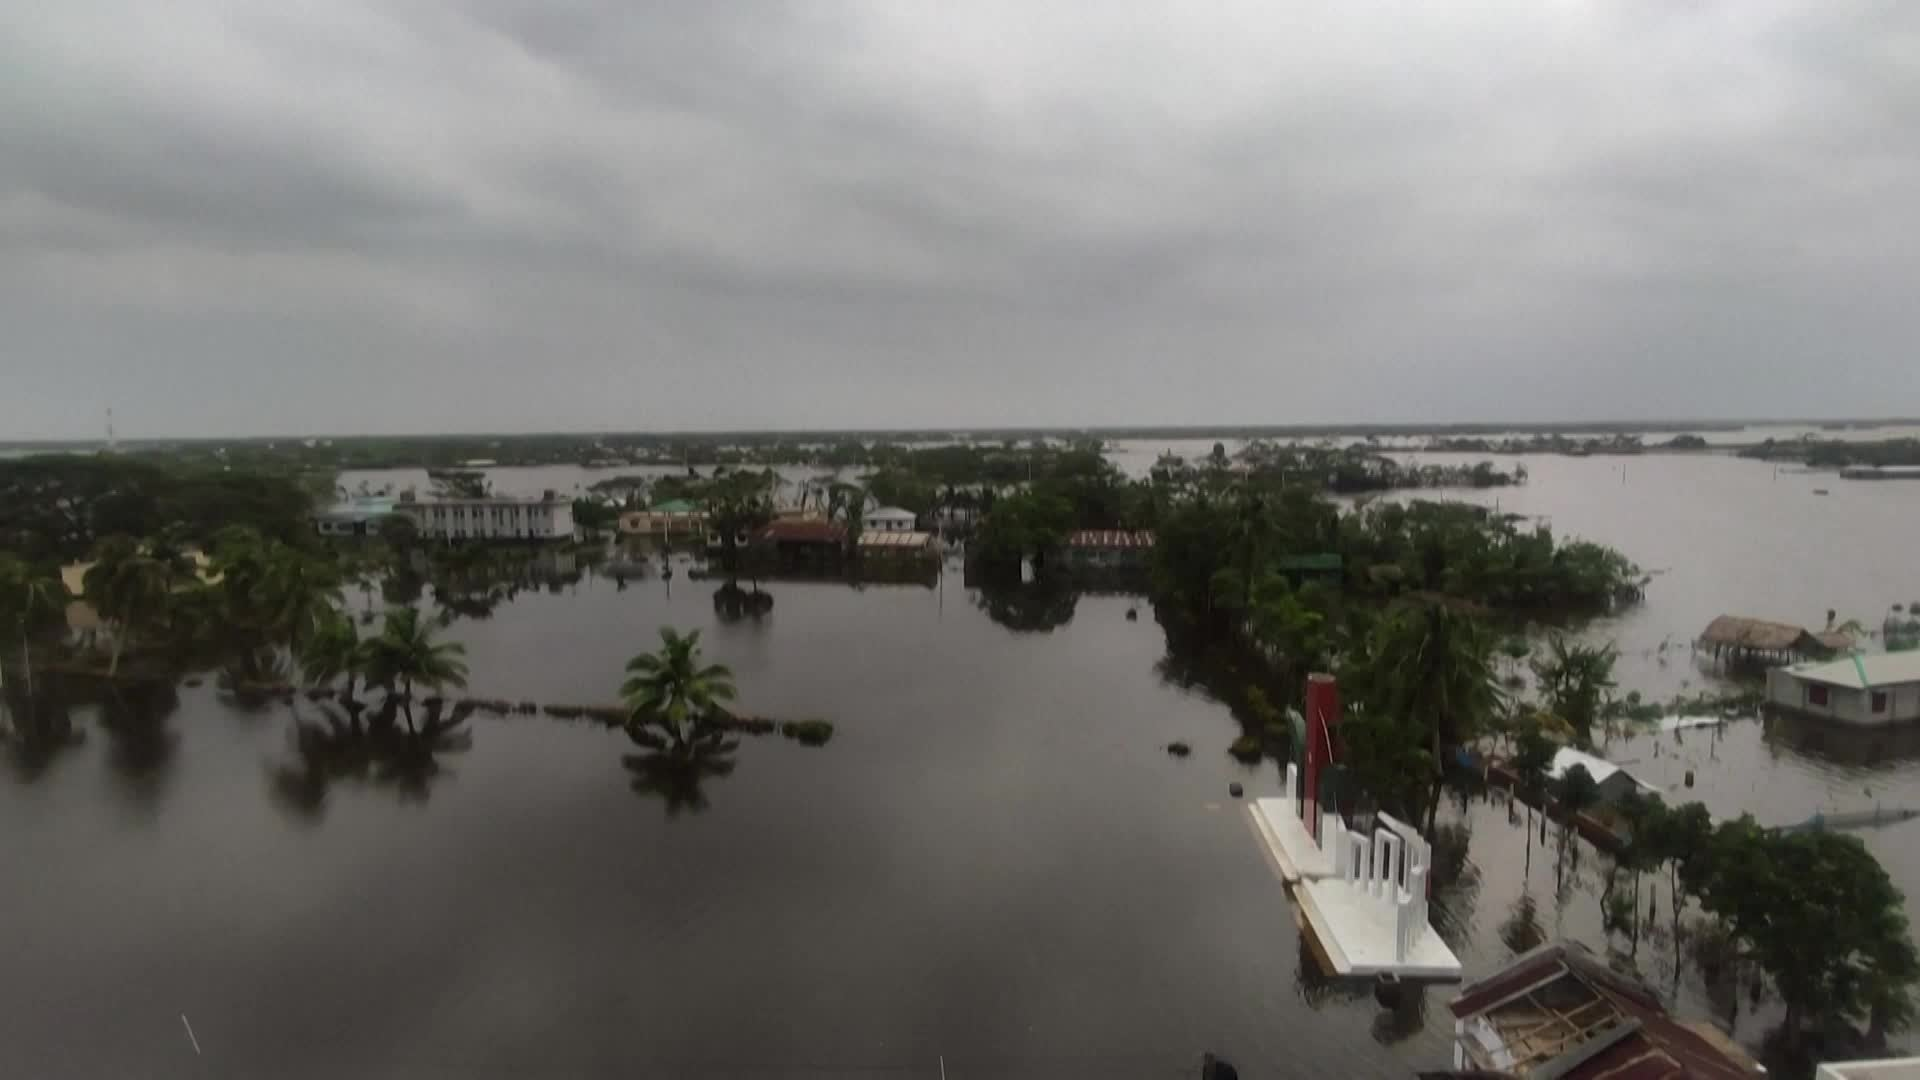 Entire villages are still submerged more than a week after a powerful cyclone ravaged parts of Indian and Bangladesh.